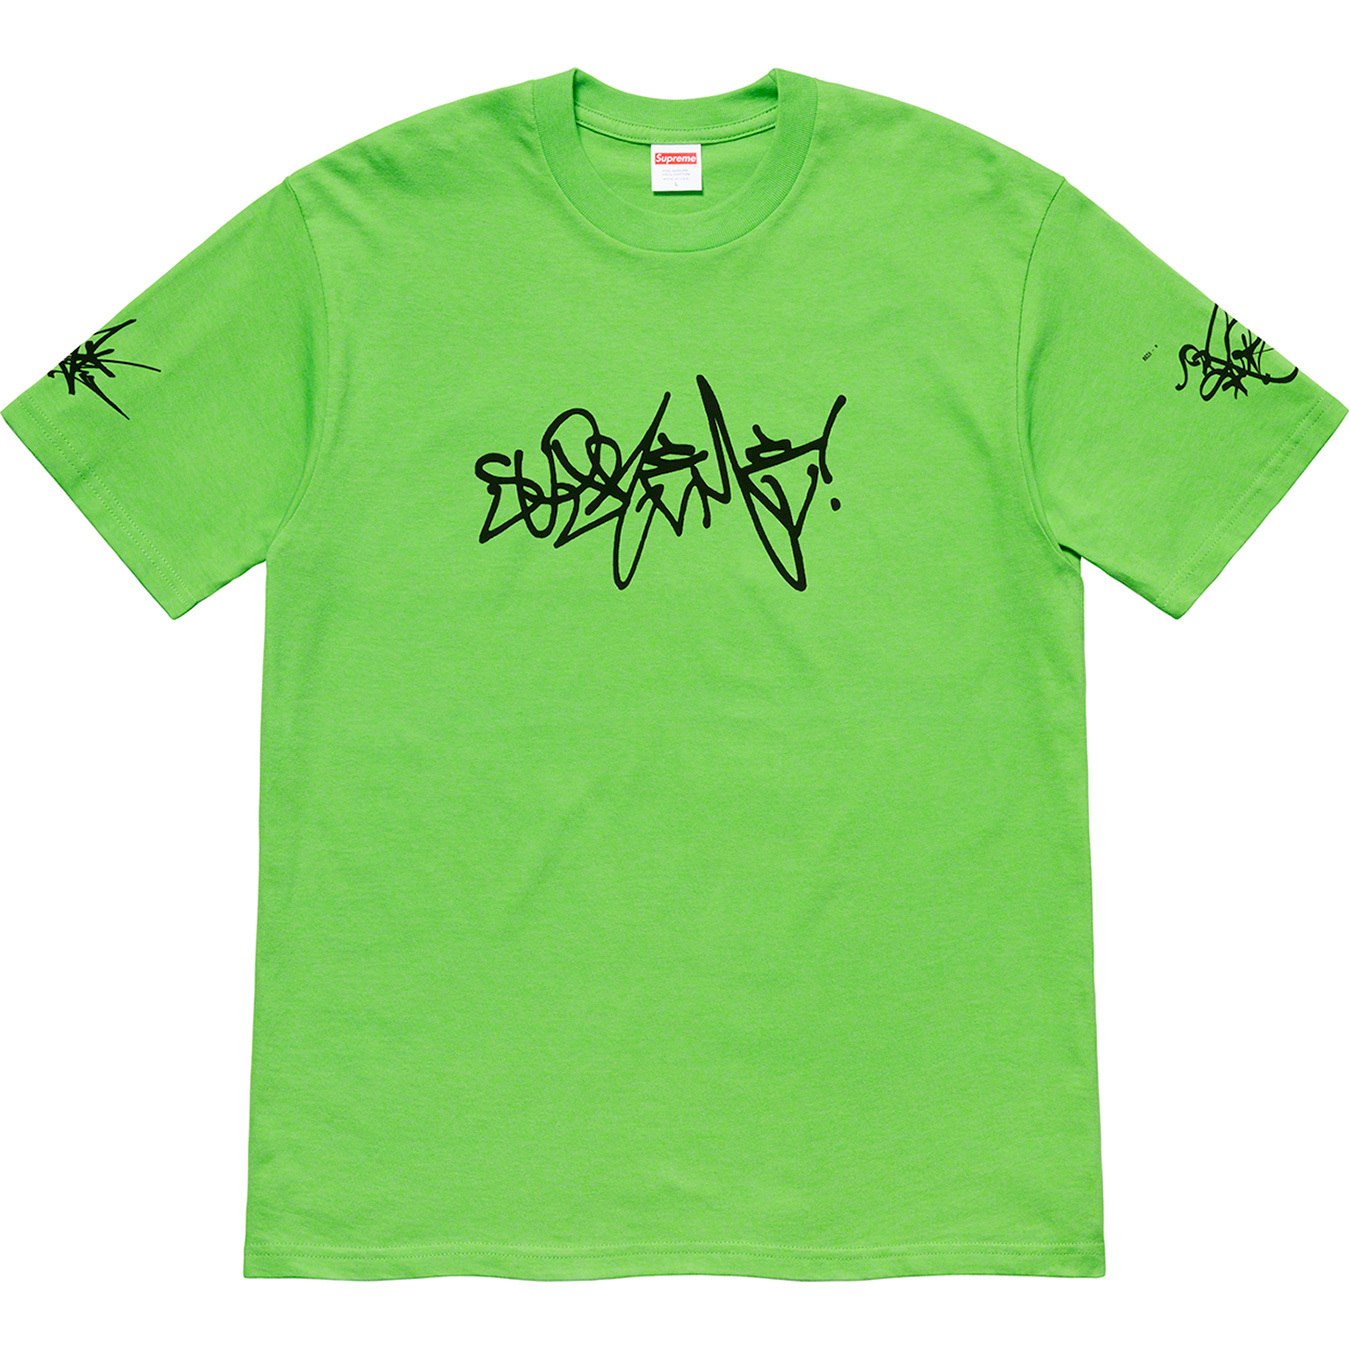 surpeme-rammellzee-20ss-collaboration-release-20200321-week4-tag-tee